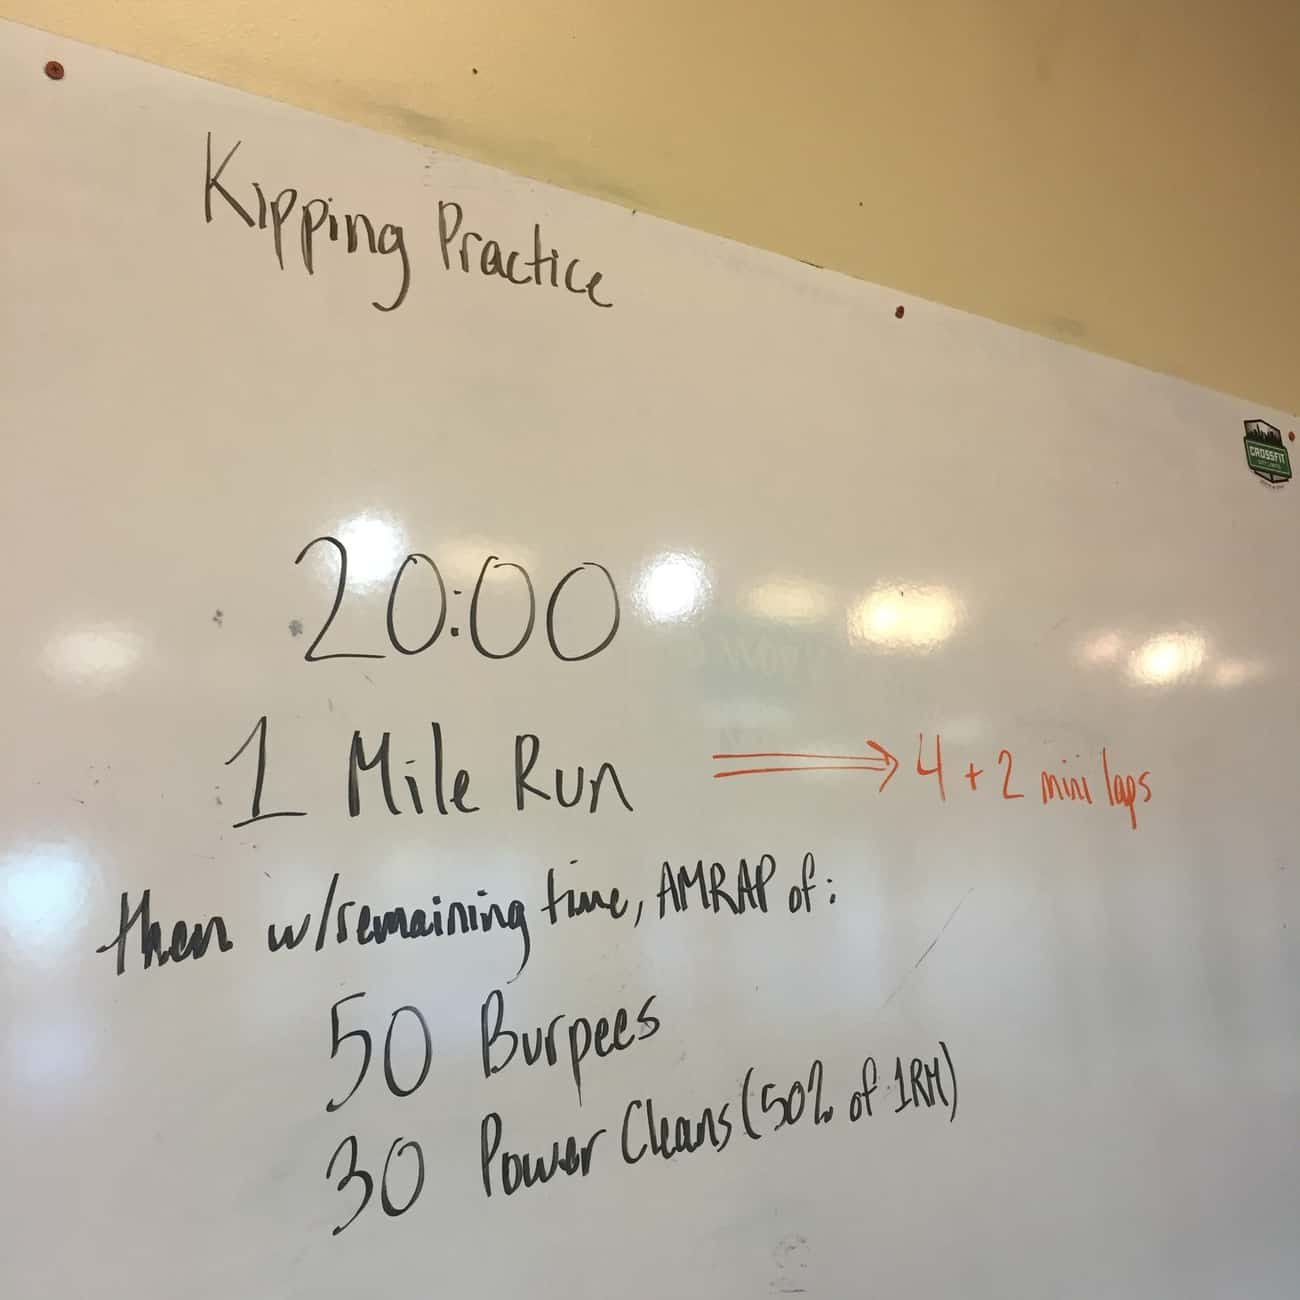 Making the Gains - 20 Minutes of Runnings, Cleans, & Burpees